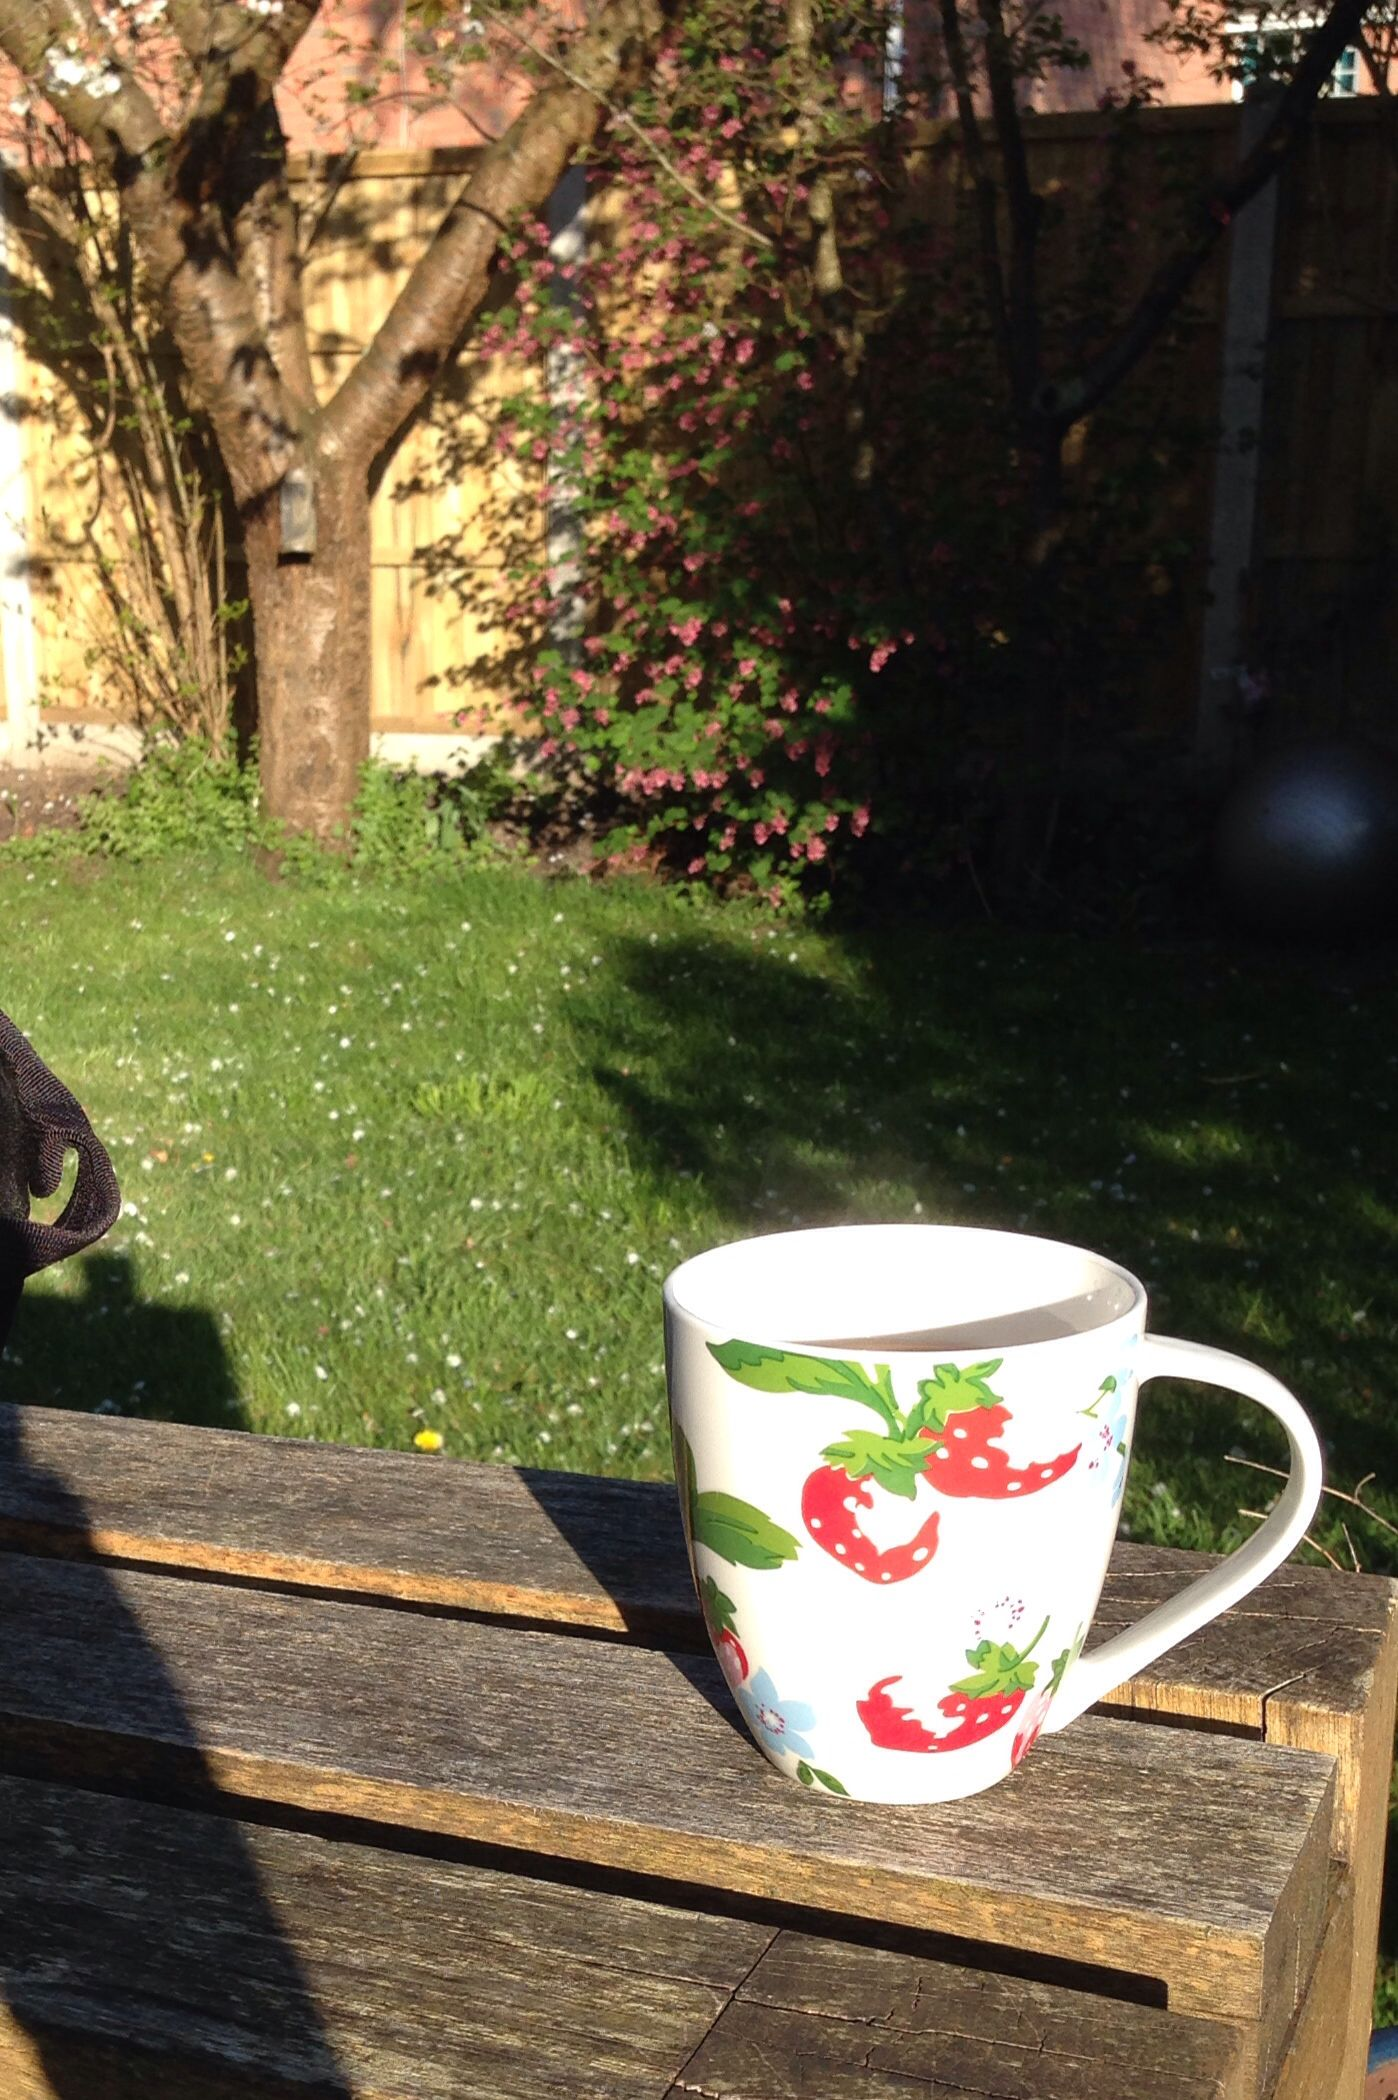 #100happydays - day 4: cup of tea in the garden in the early evening sunshine.